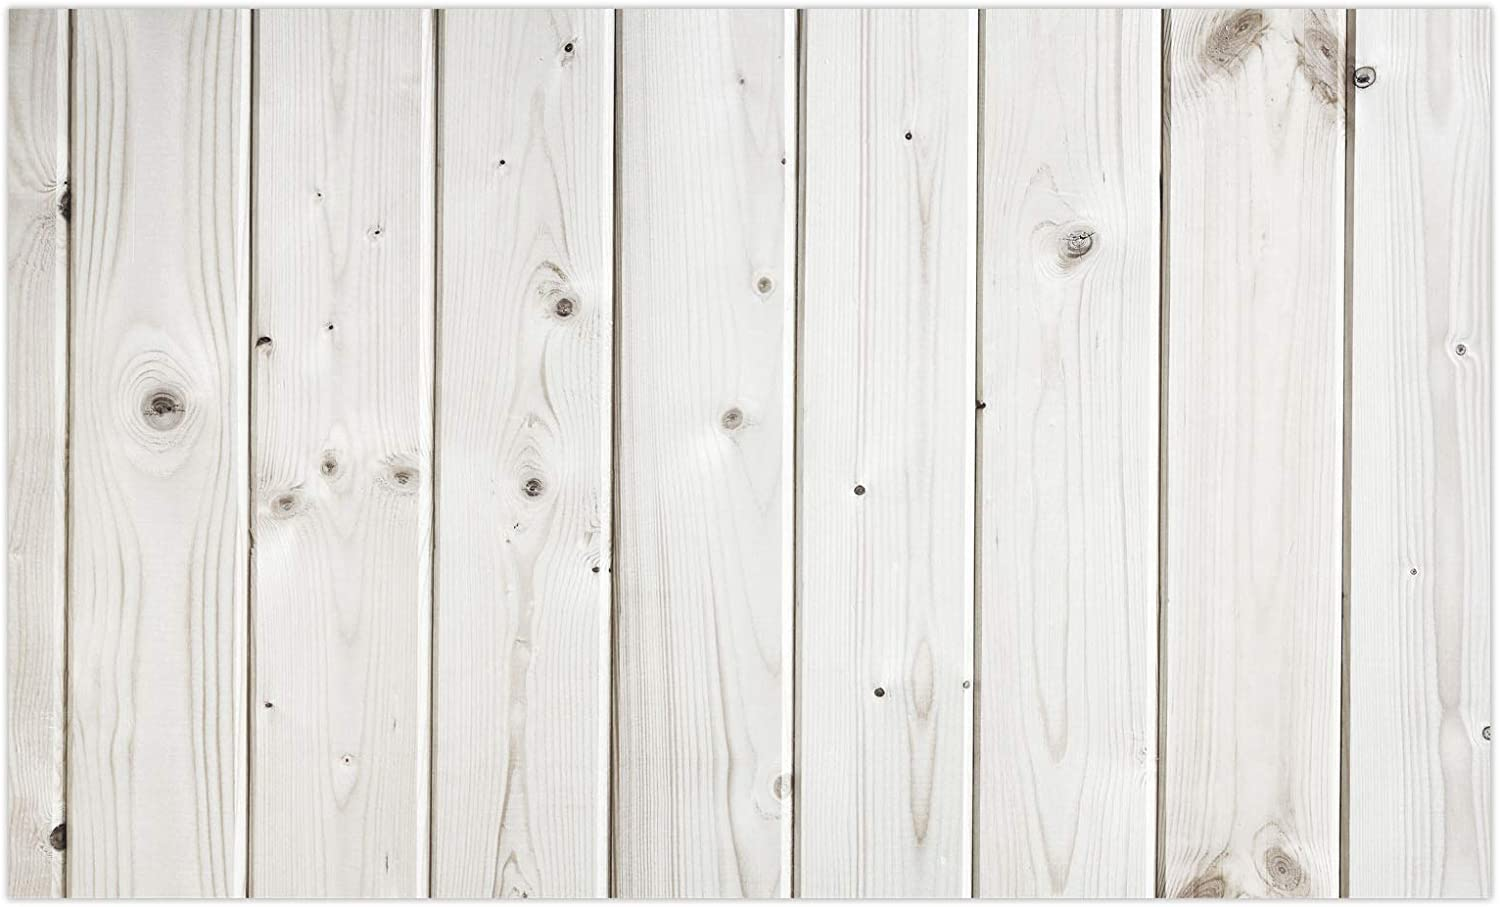 Leowefowa Grunge Old Wood Plank Red Berries Pine Needles Backdrop for Photography 5x3ft Vinyl Christmas Photo Background Child Kids Baby Portrait Shoot Xmas Party Banner Event Show Photo Props